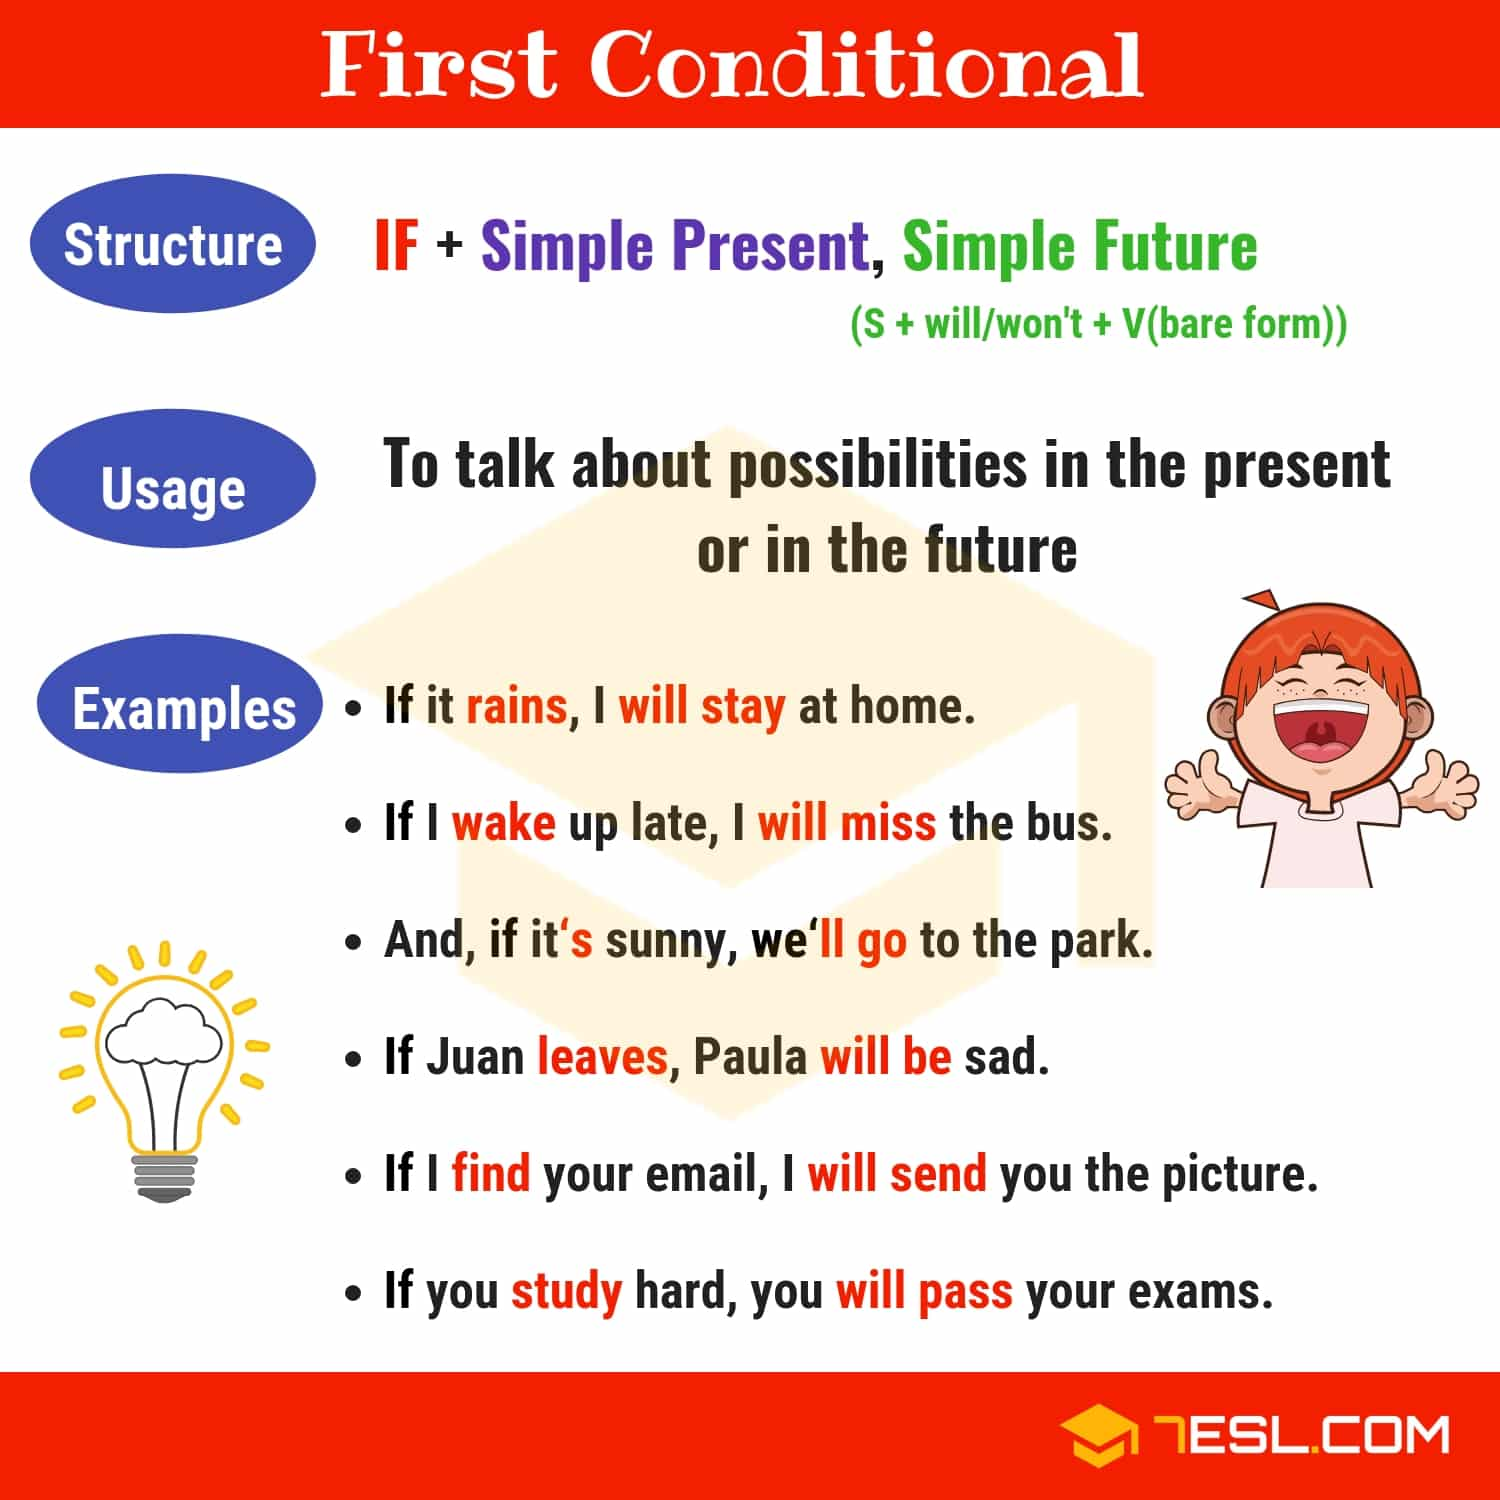 The First Conditional Conditional Sentences Type 1 Rules